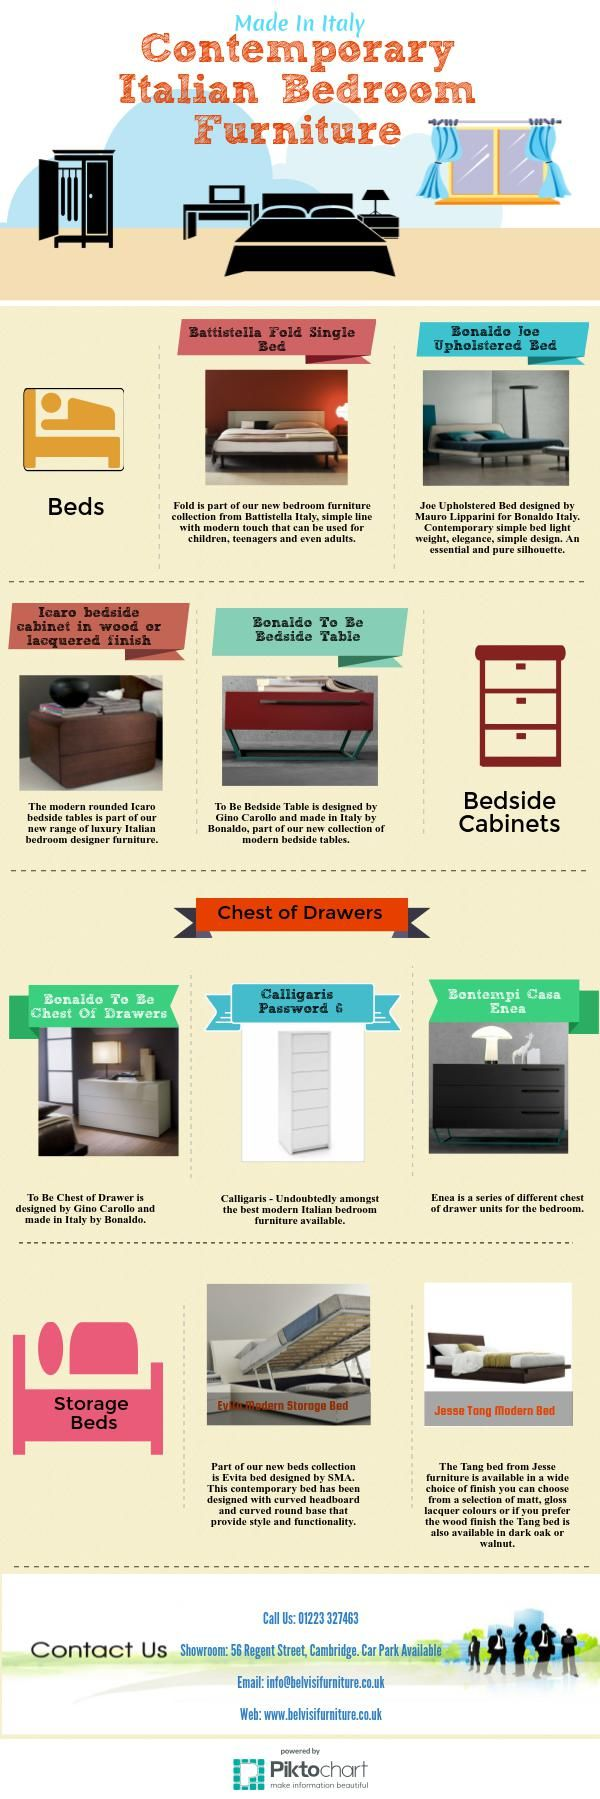 Second Hand Italian Bedroom Furniture 17 Best Ideas About Italian Bedroom Furniture On Pinterest